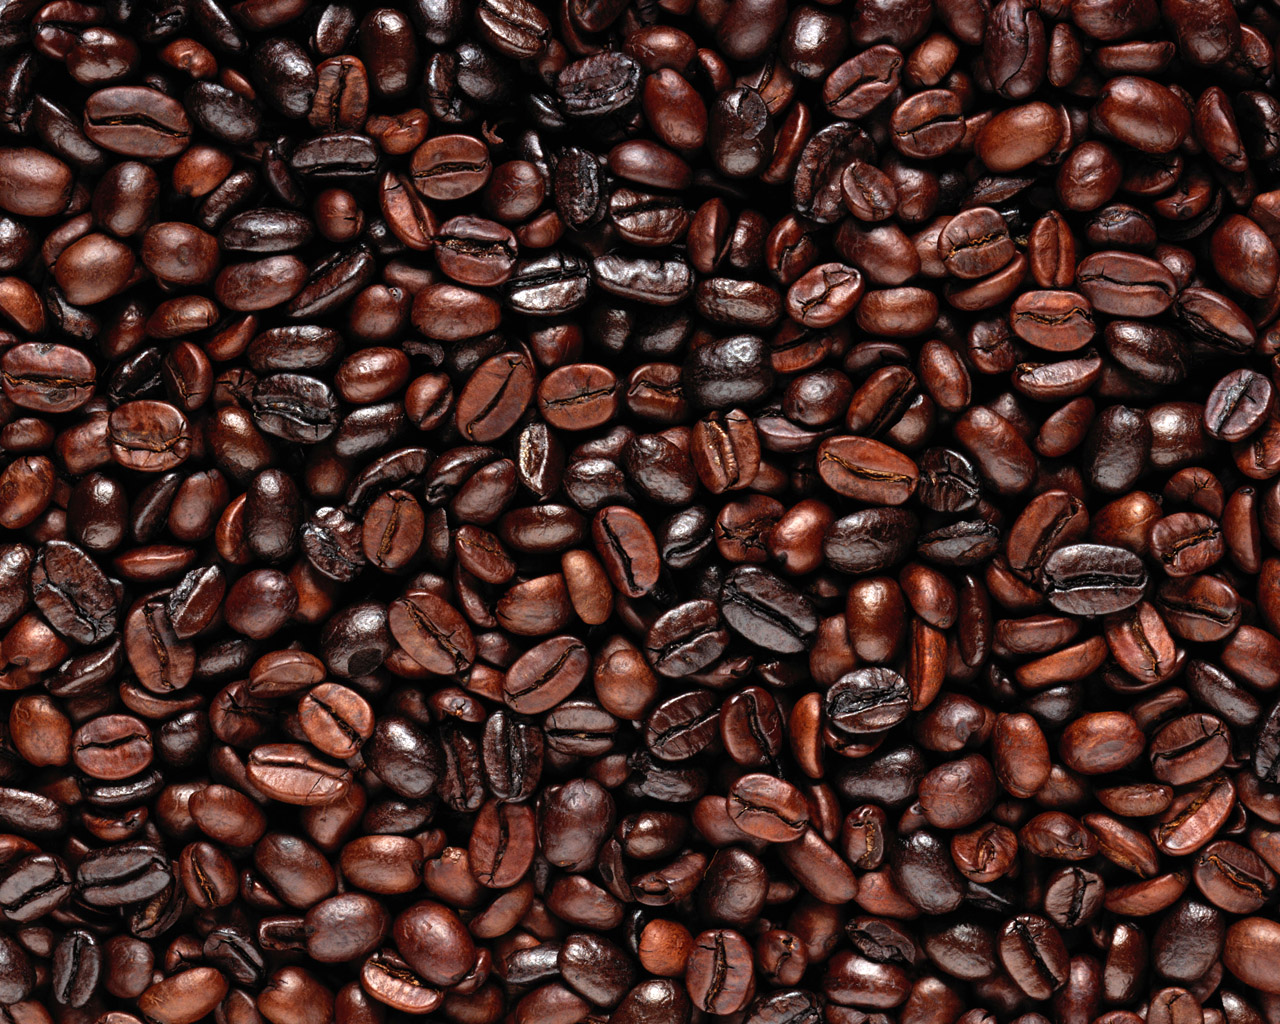 Coffee wallpaper high definition 4669